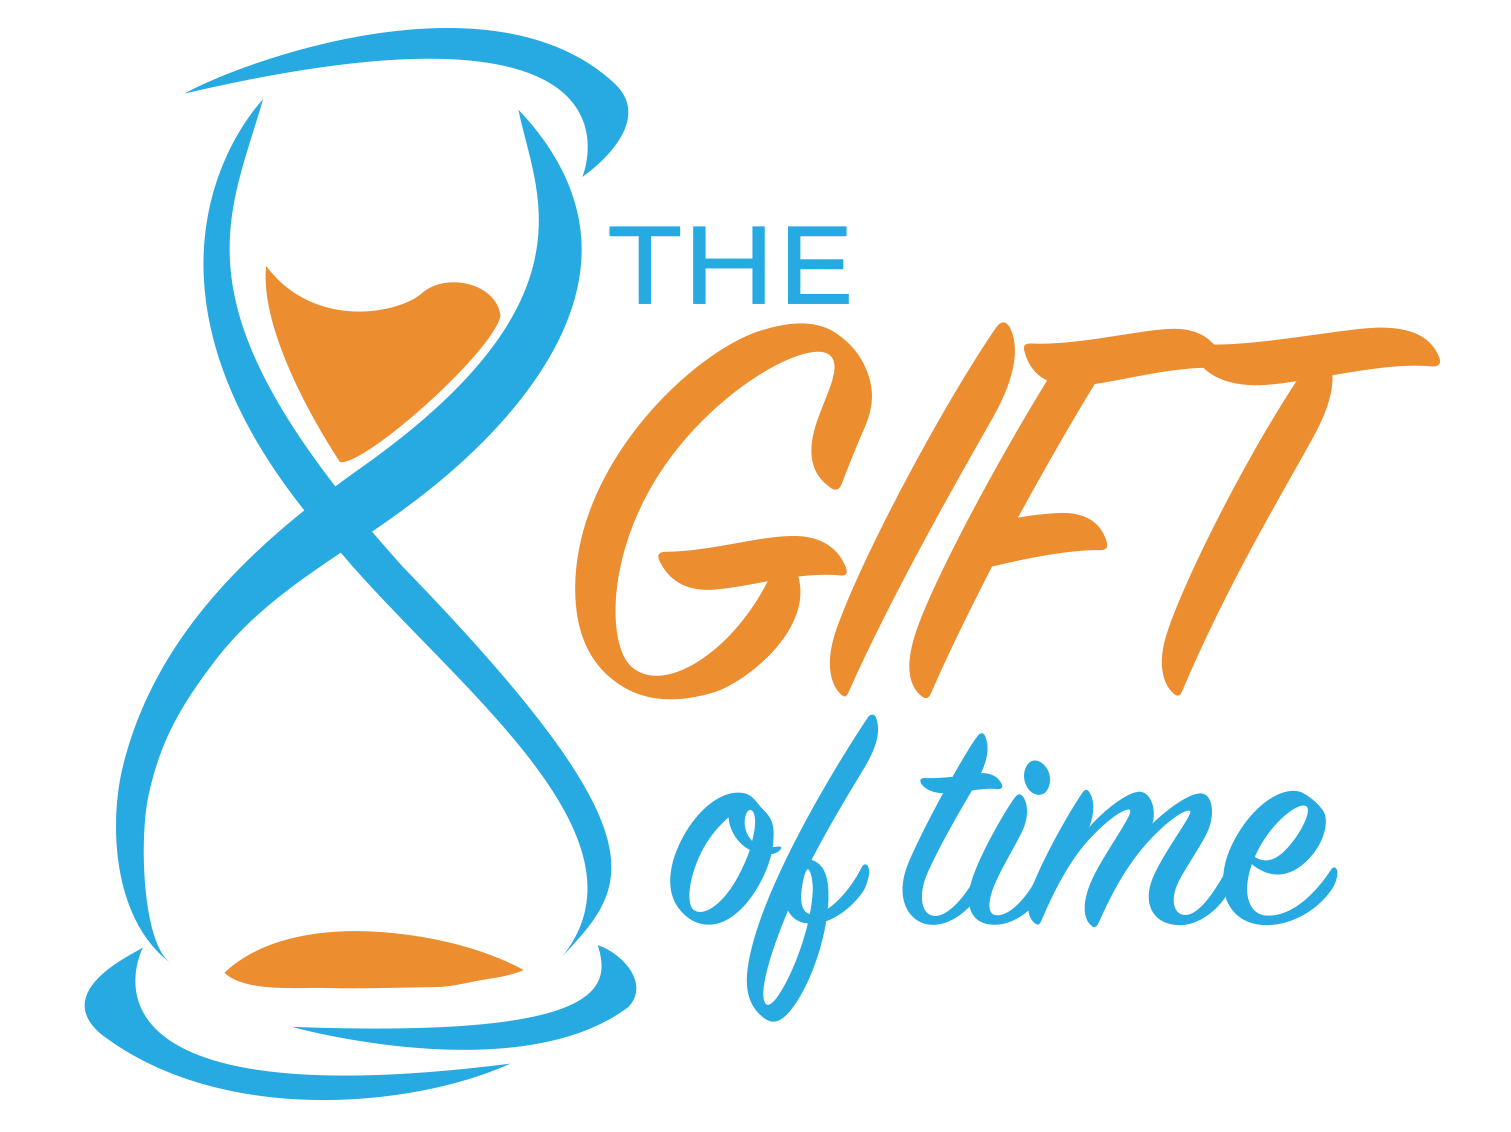 GIST Awareness Day Gift of Time logo download - The Life Raft Group